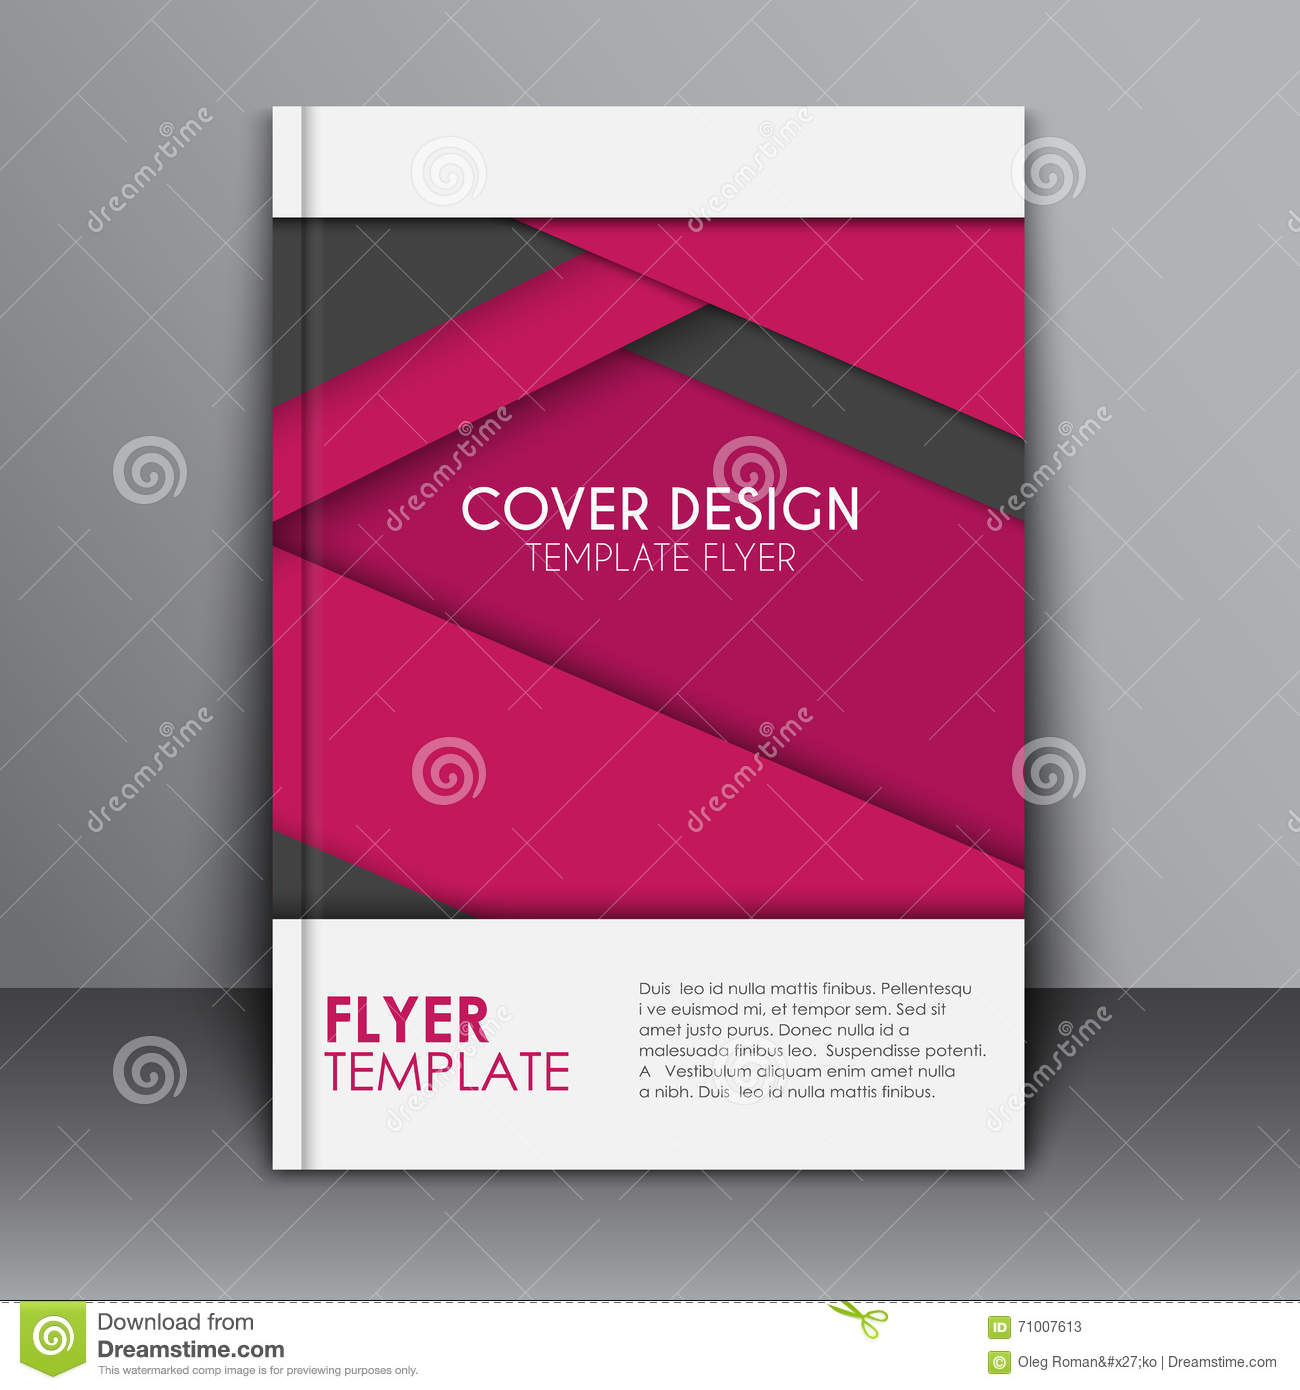 Book Cover Design Materials : Cover design in the material style stock vector